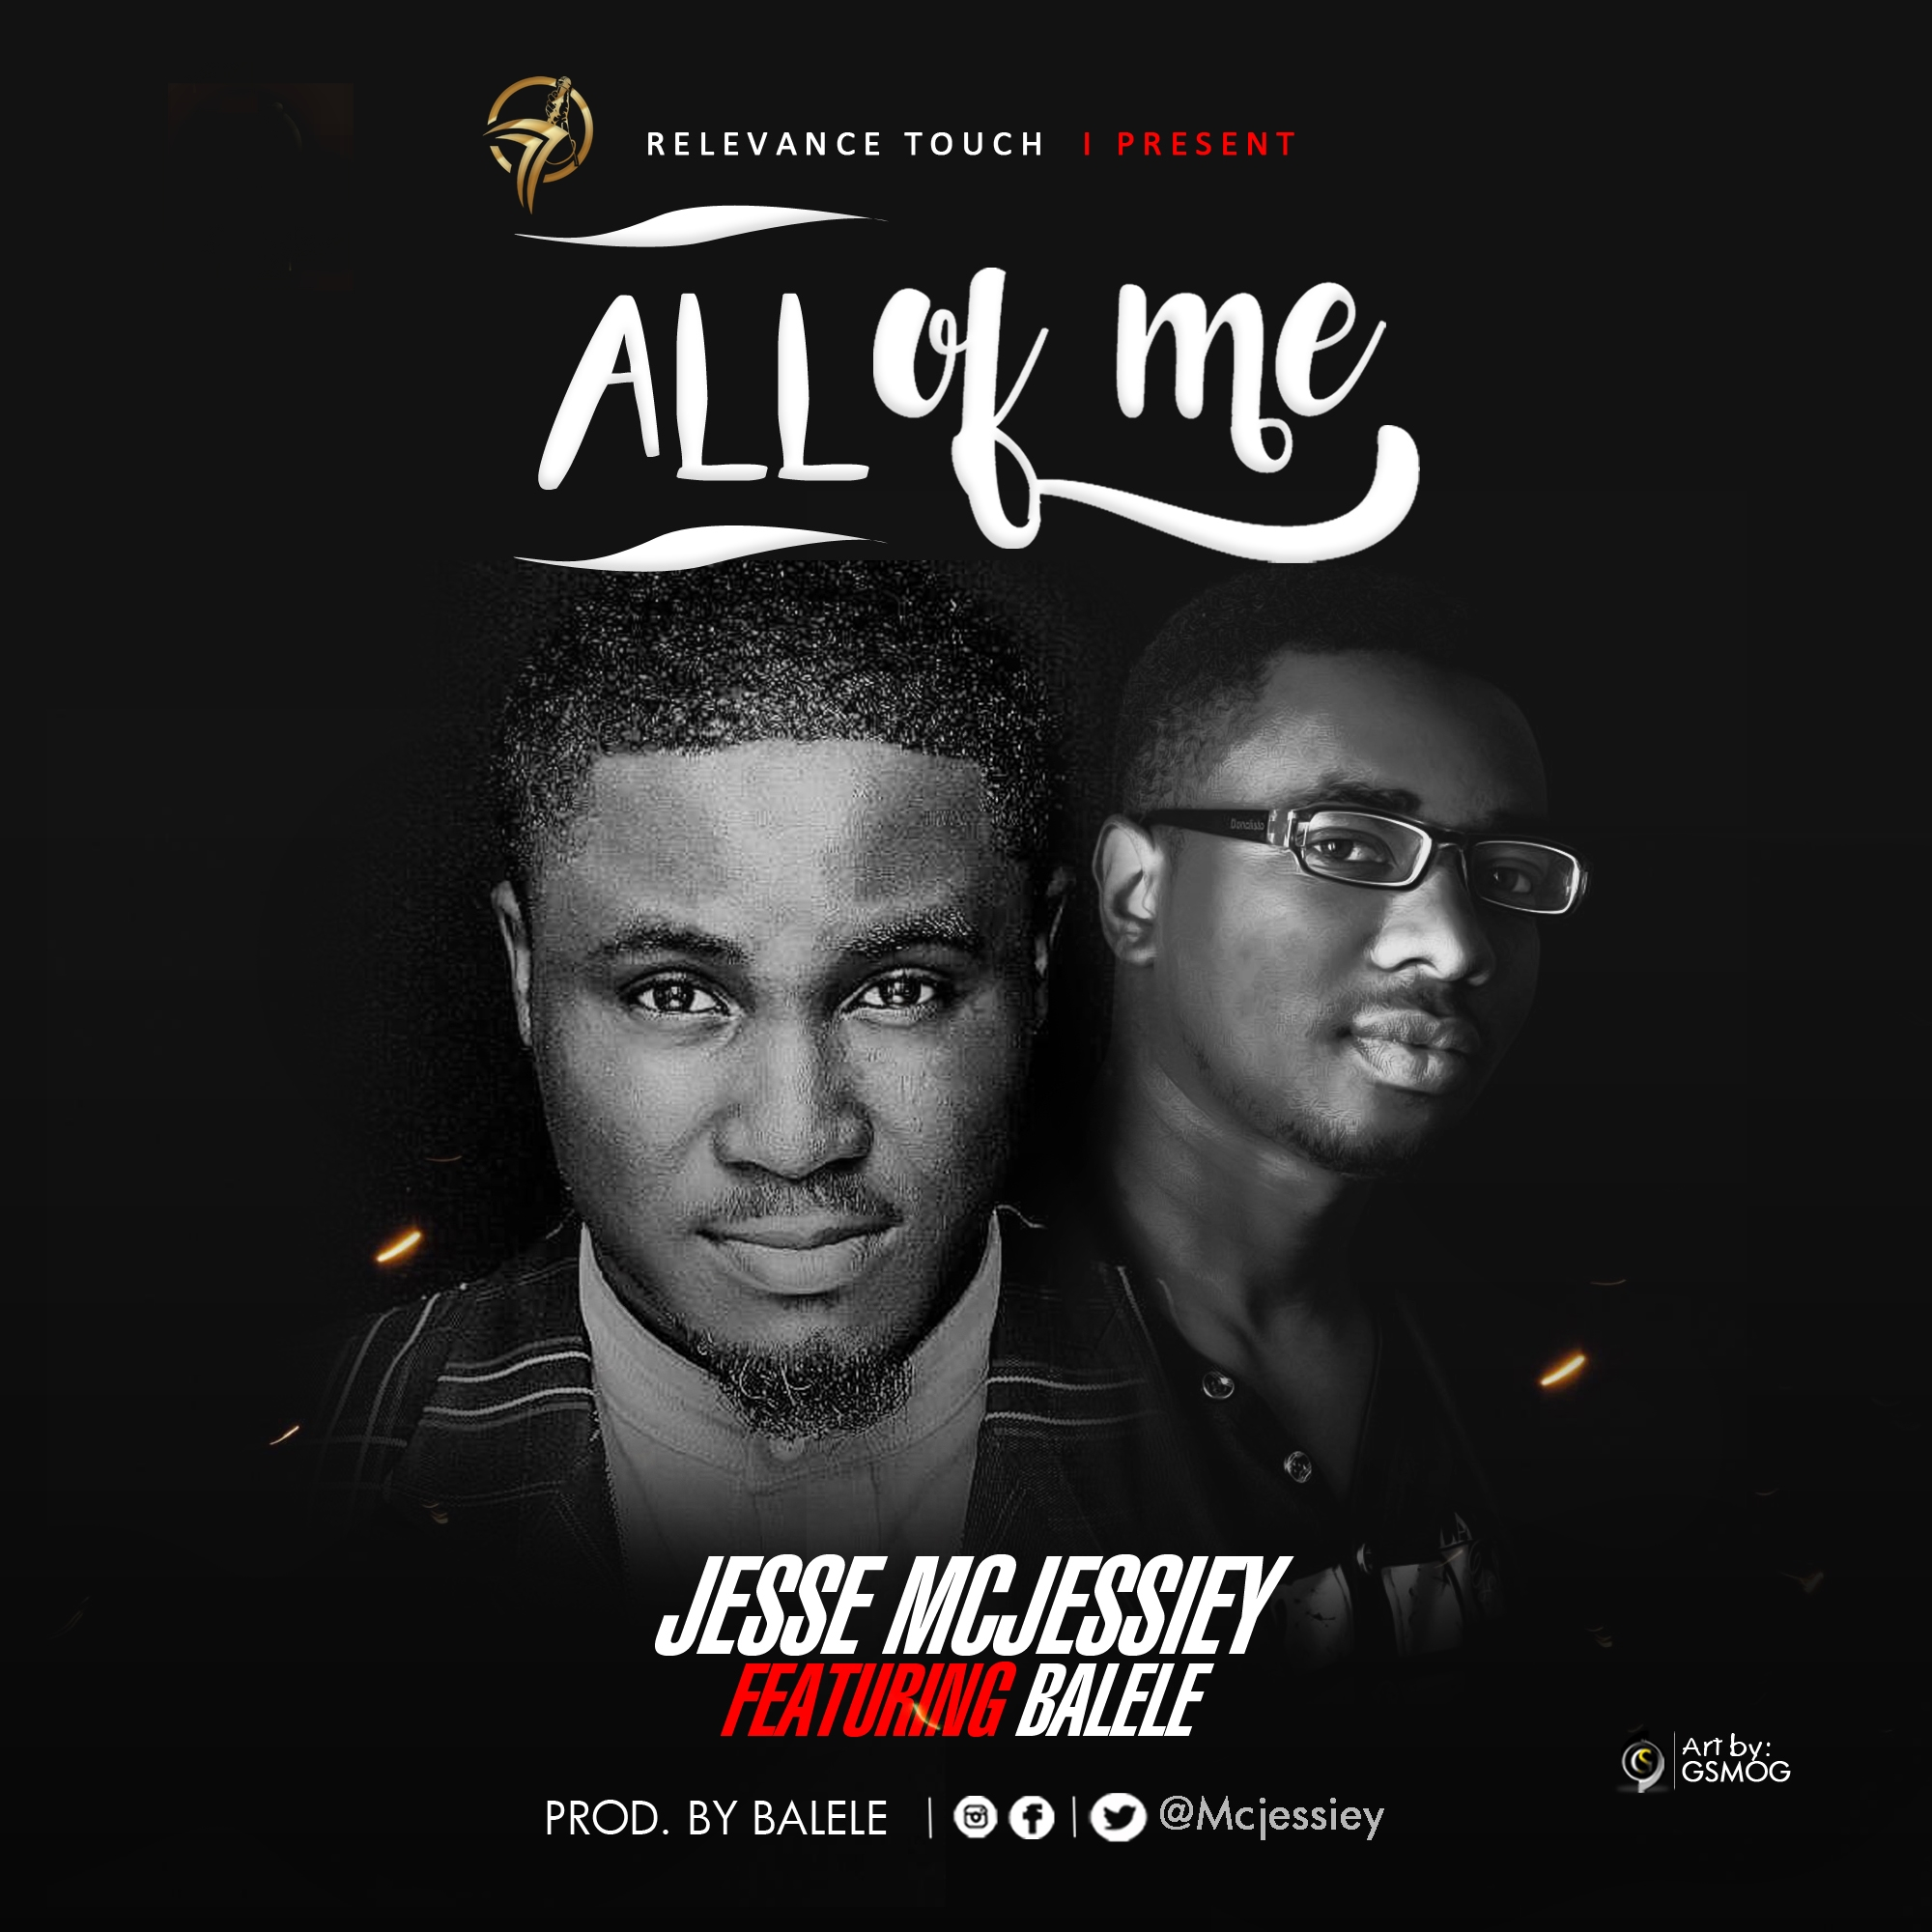 Download Music: Jesse Mcjessiey   All Of Me   Feat. Balele [@Mcjessiey]